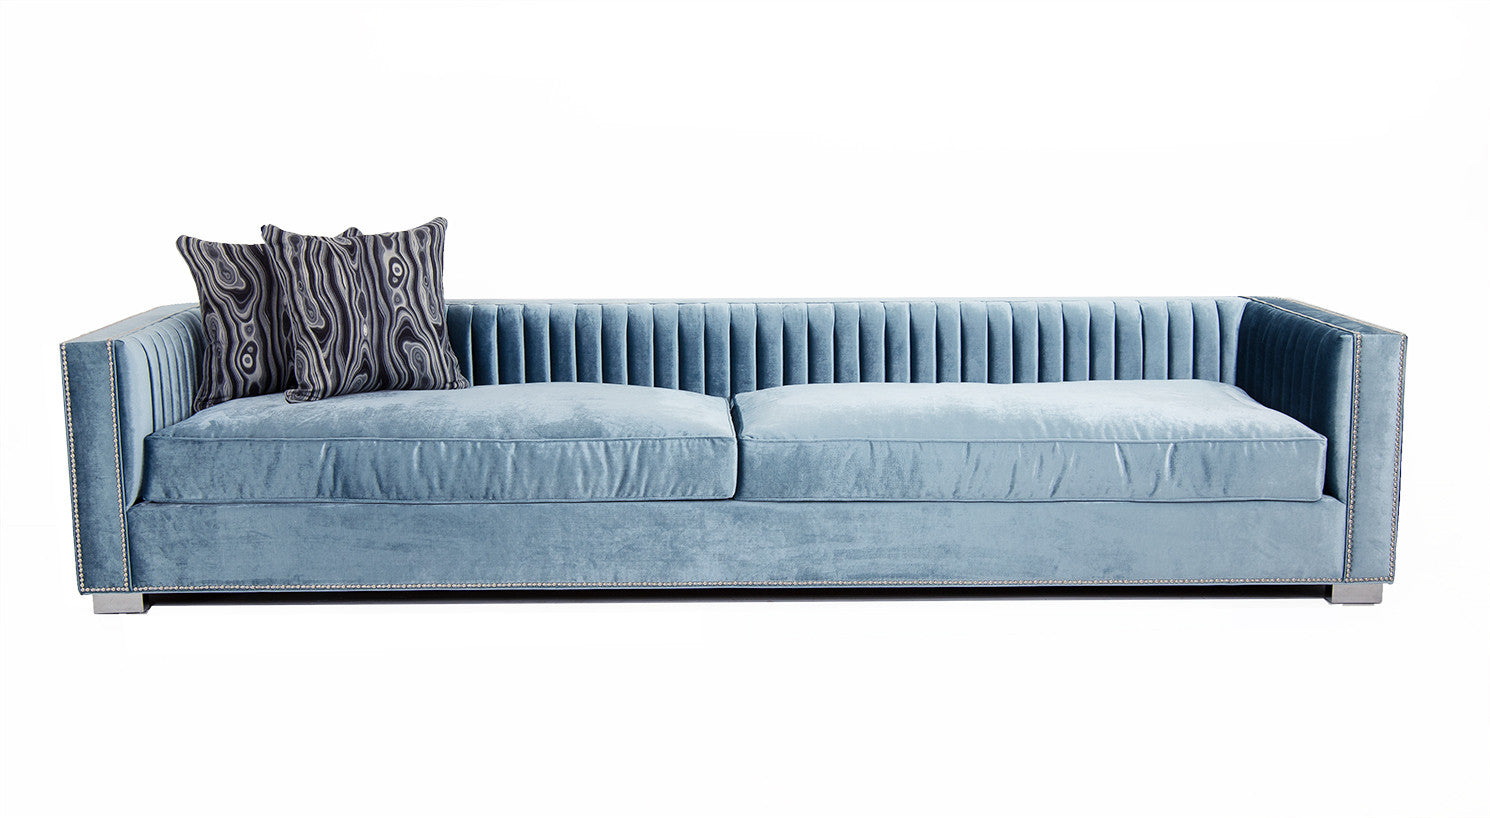 Acapulco Sofa in Trend Denim Velvet - ModShop